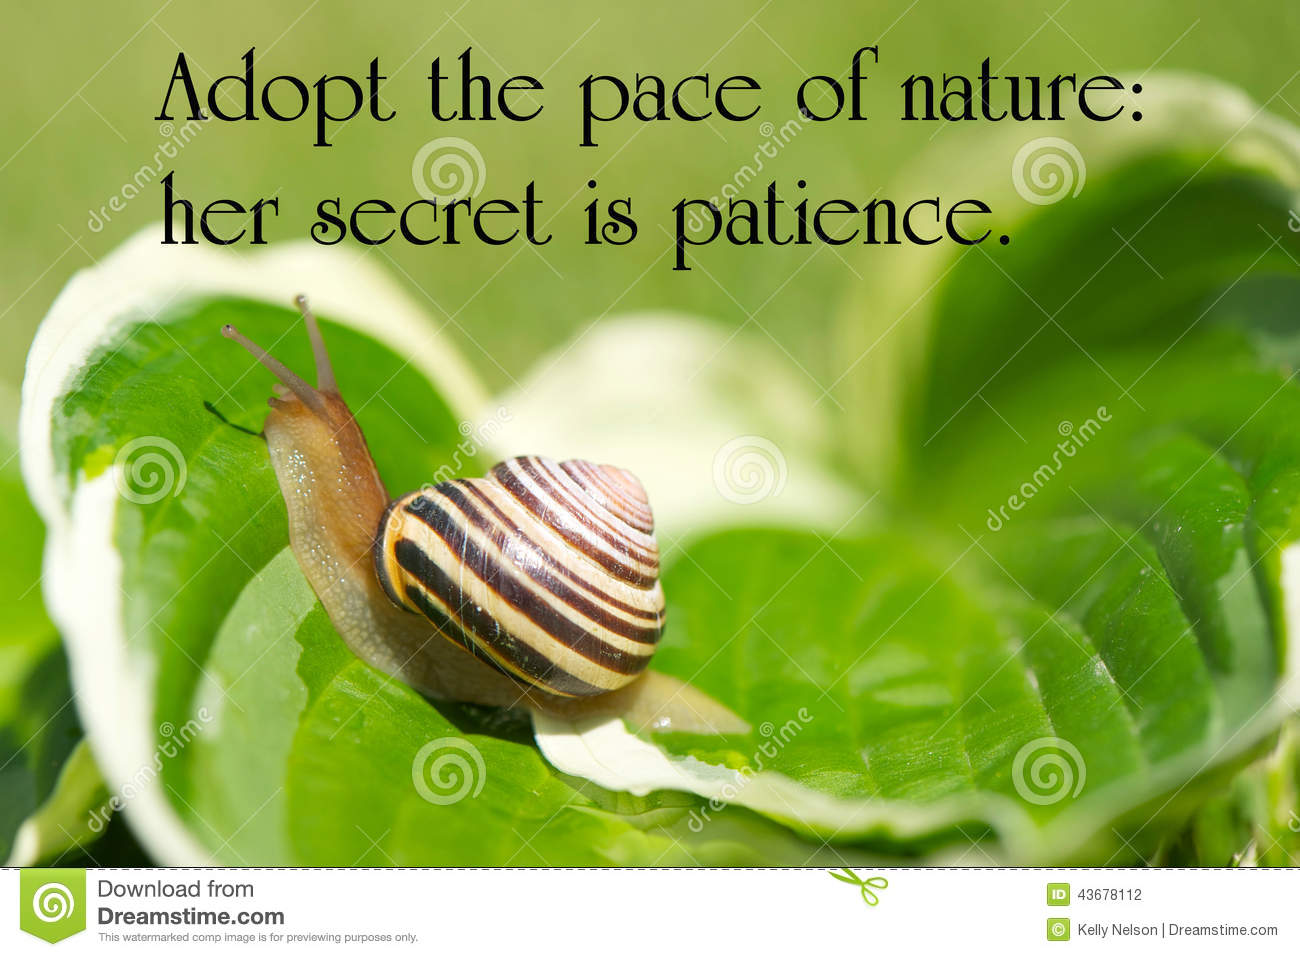 what is nature by emerson about